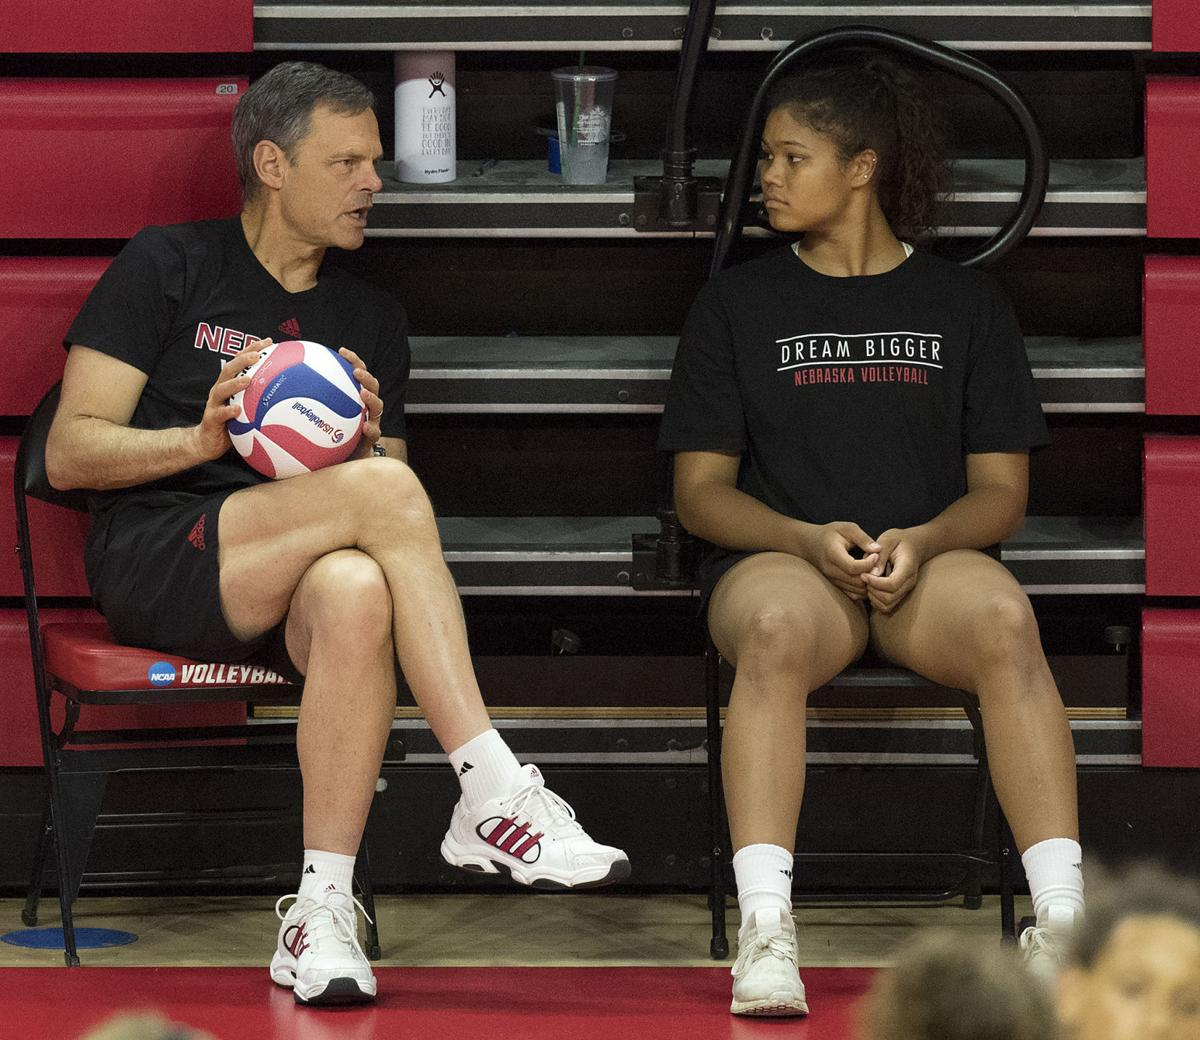 Husker Volleyball Recruits Sweep Top Three Spots In 2021 Rankings College Columbustelegram Com